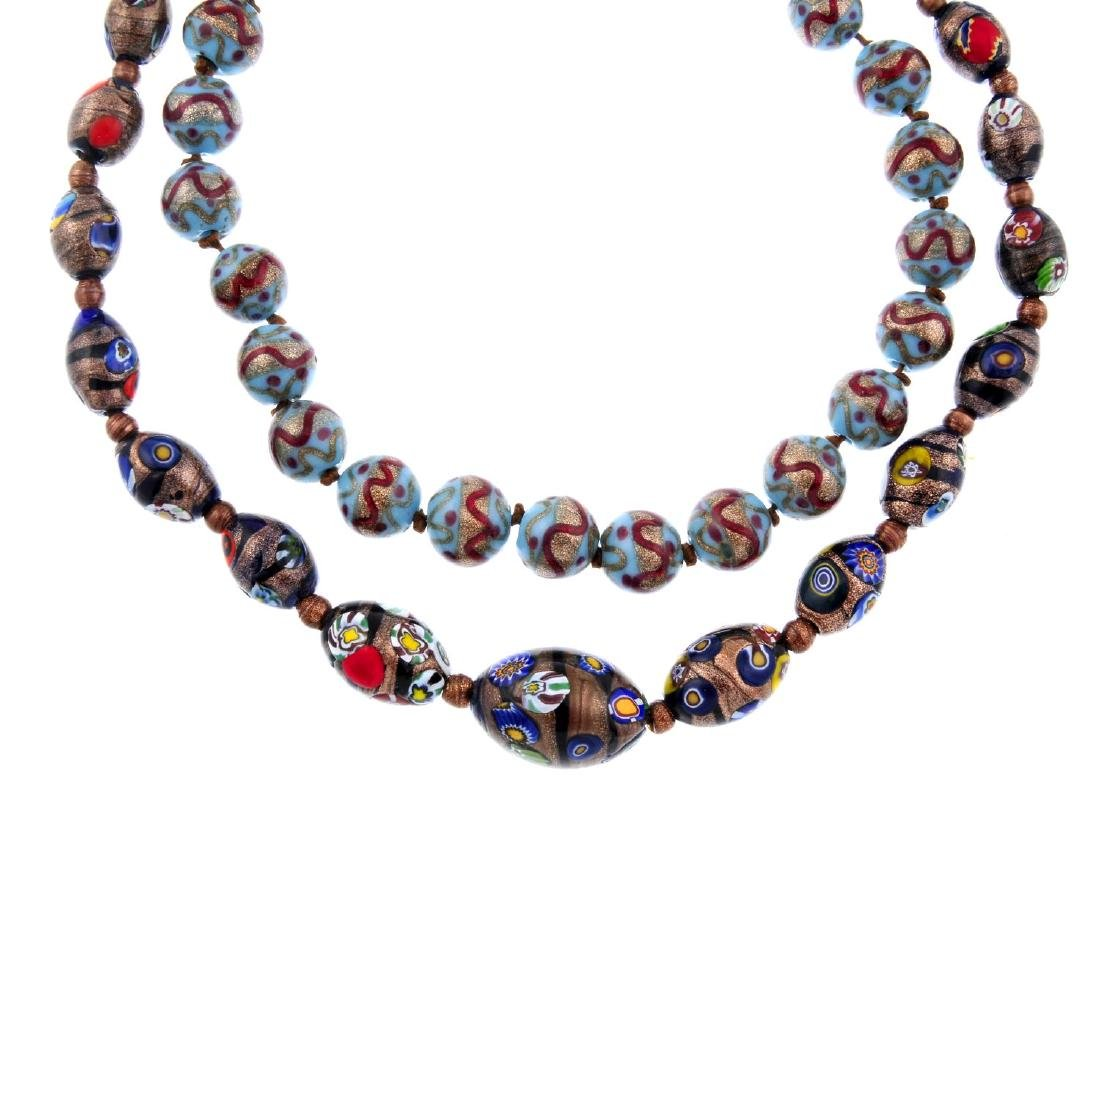 Six mid 20th century glass bead necklaces. To include a